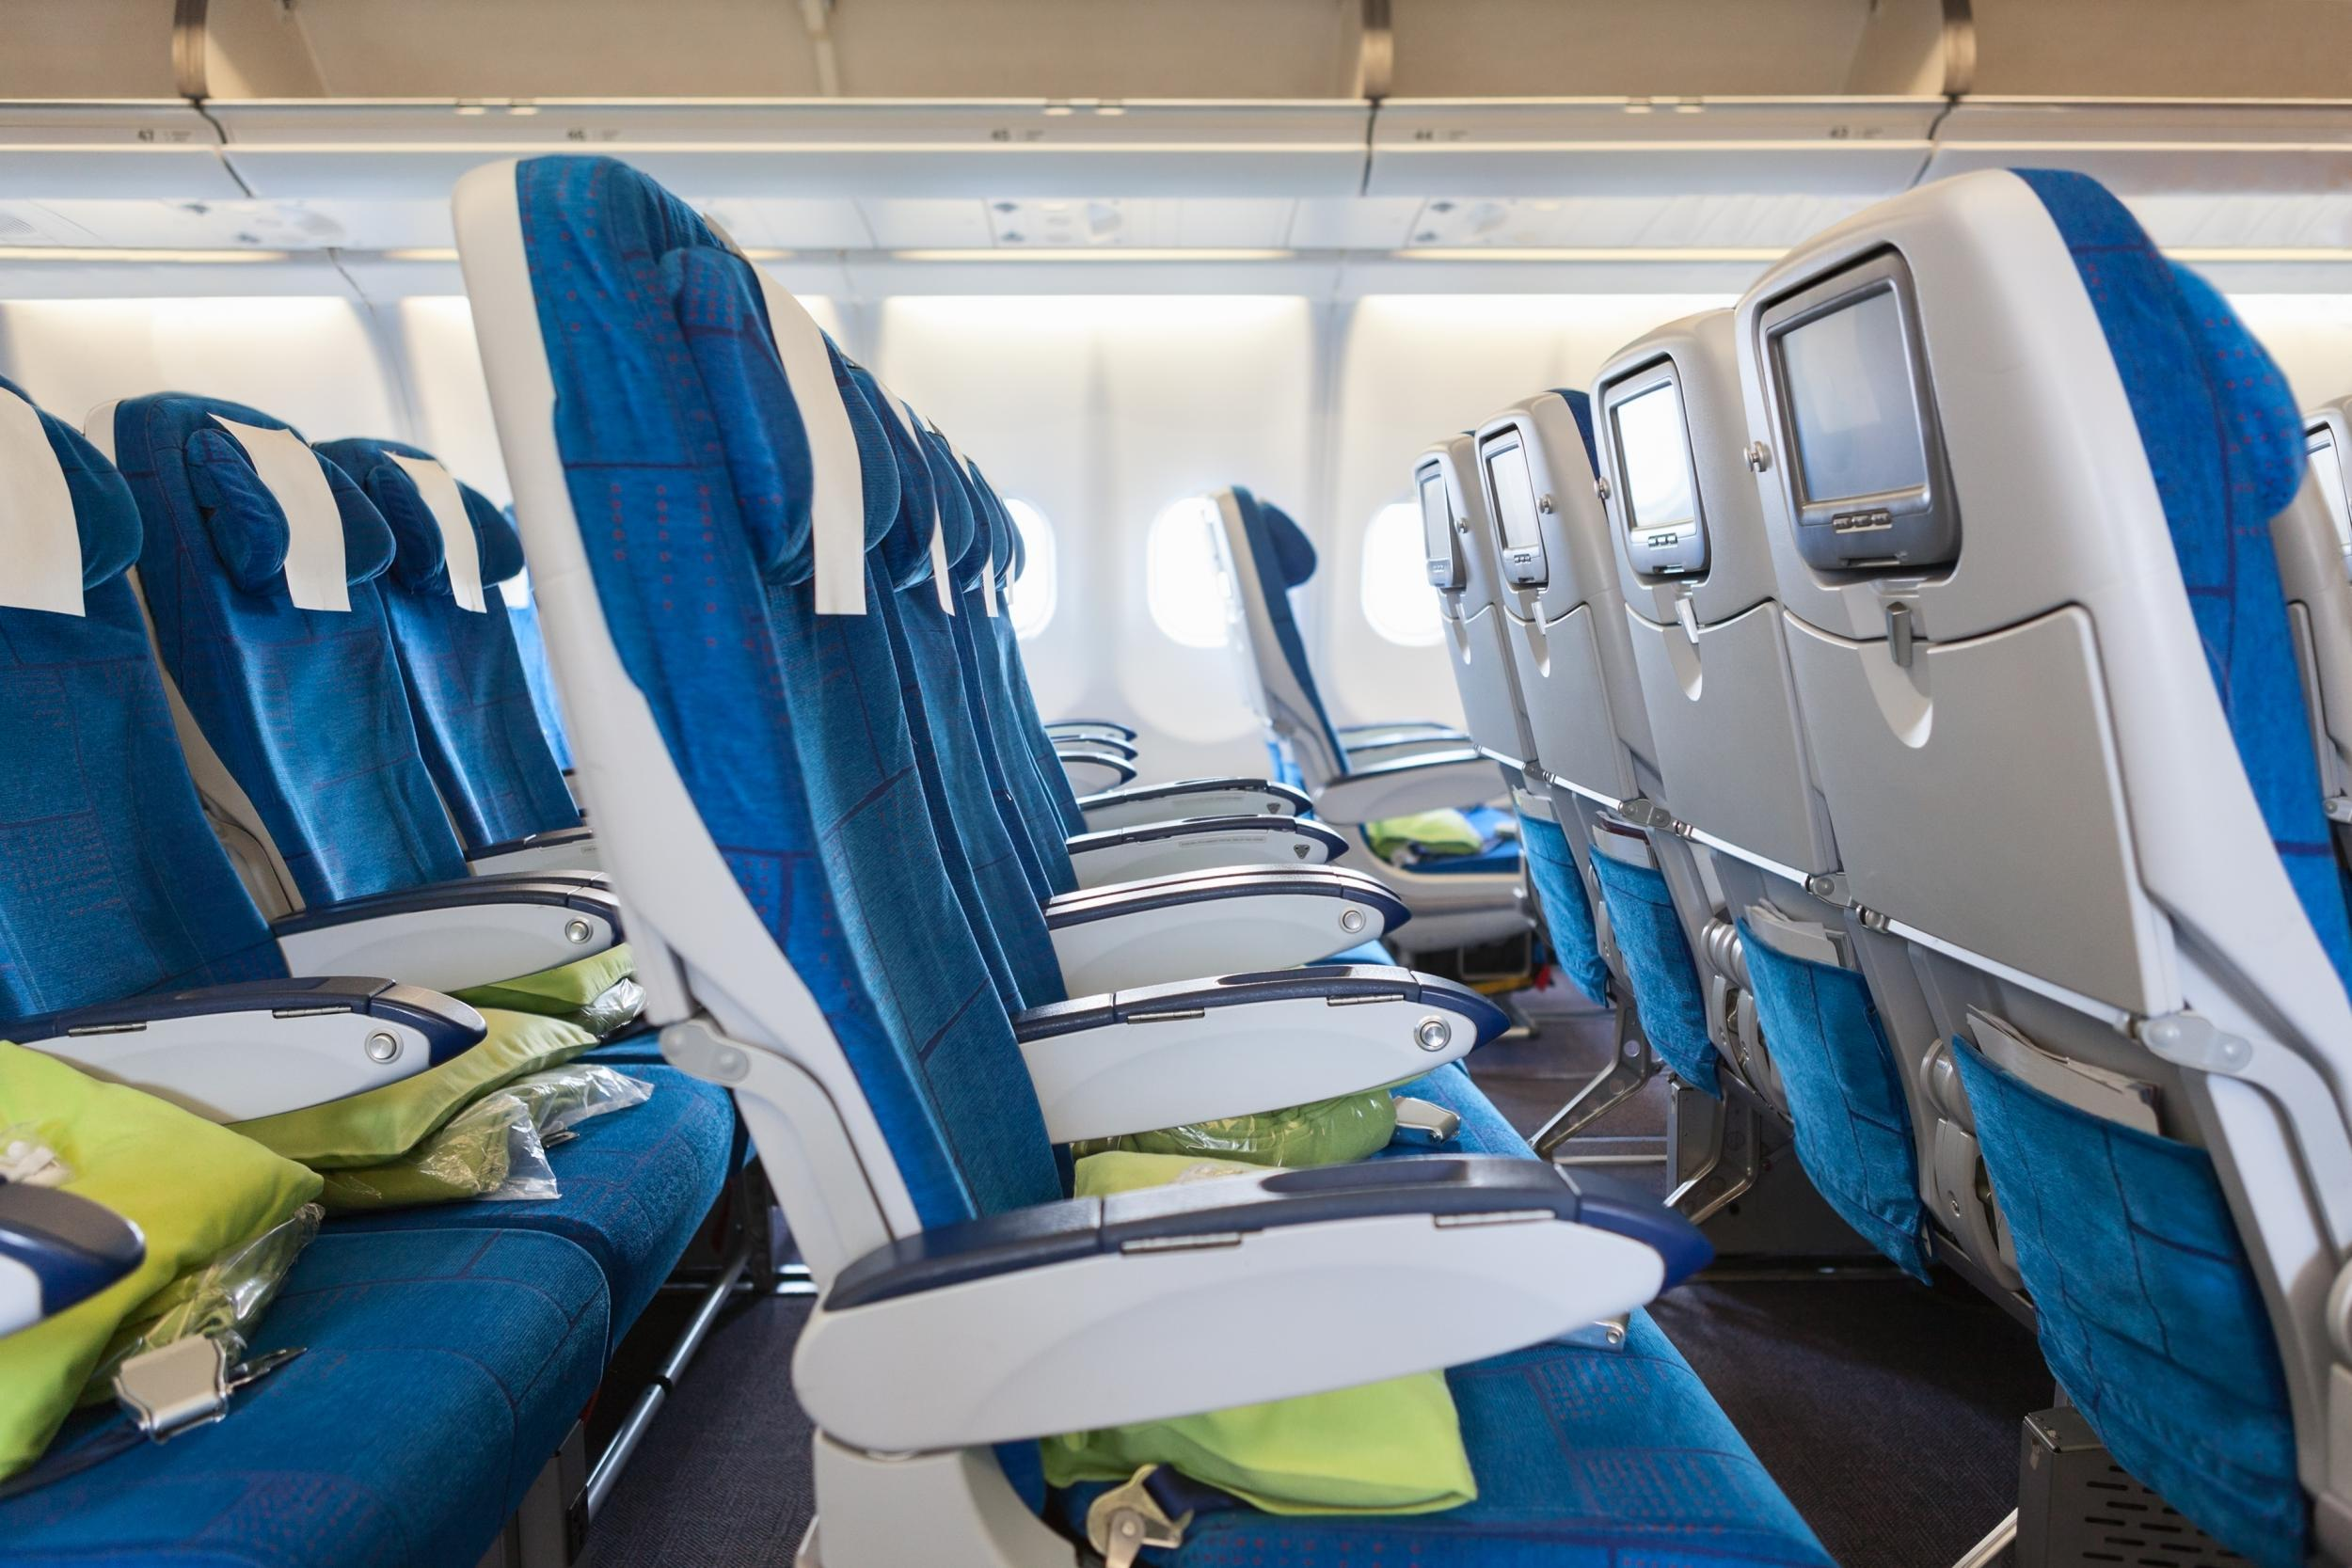 Should you recline your seat on a plane?